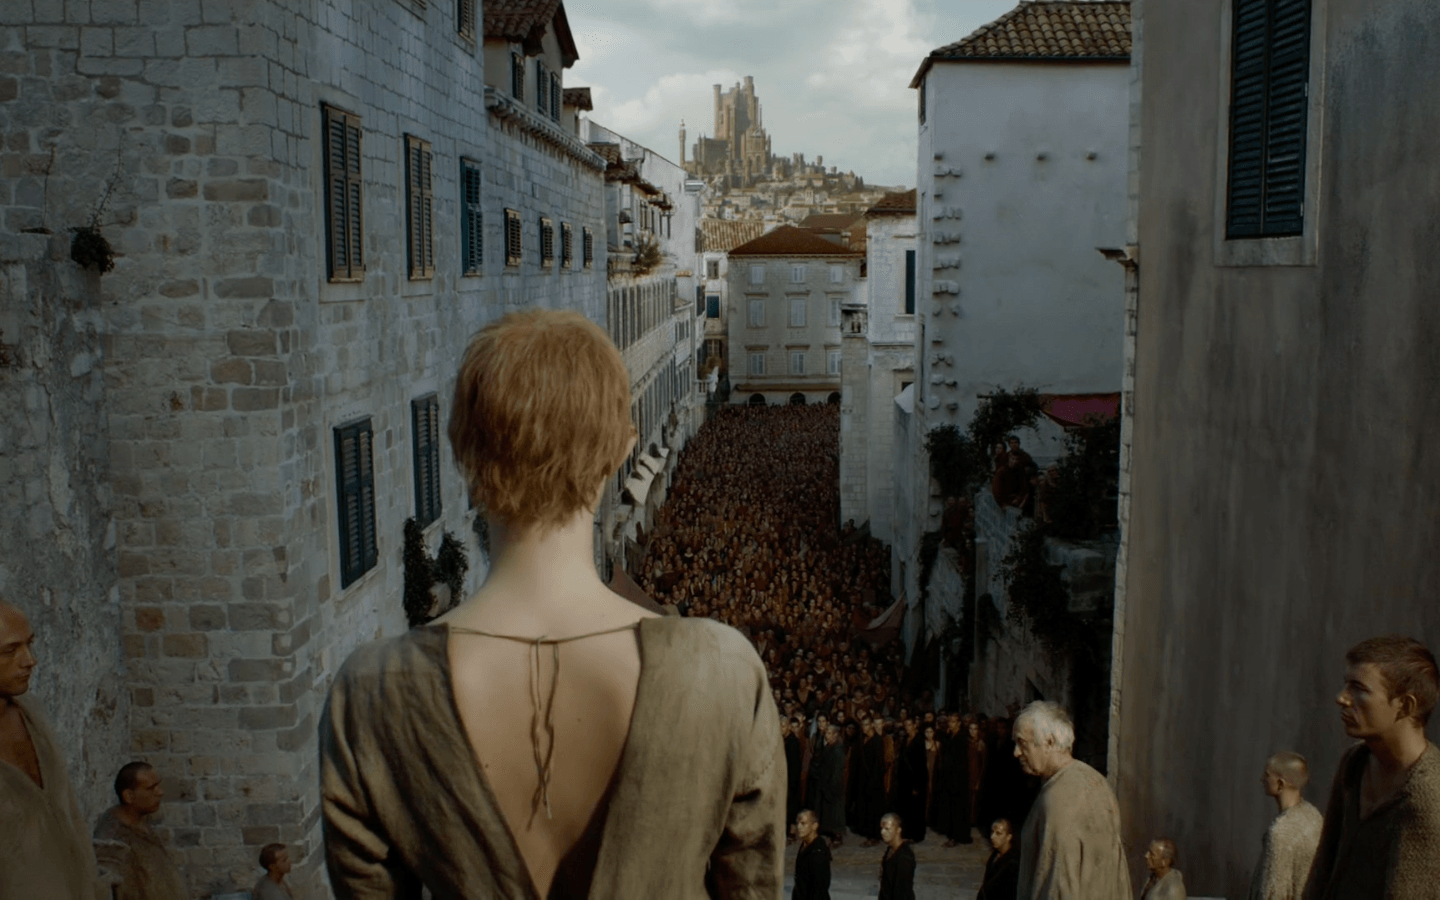 The former queen about to strip in front of Kings Landing | HBO